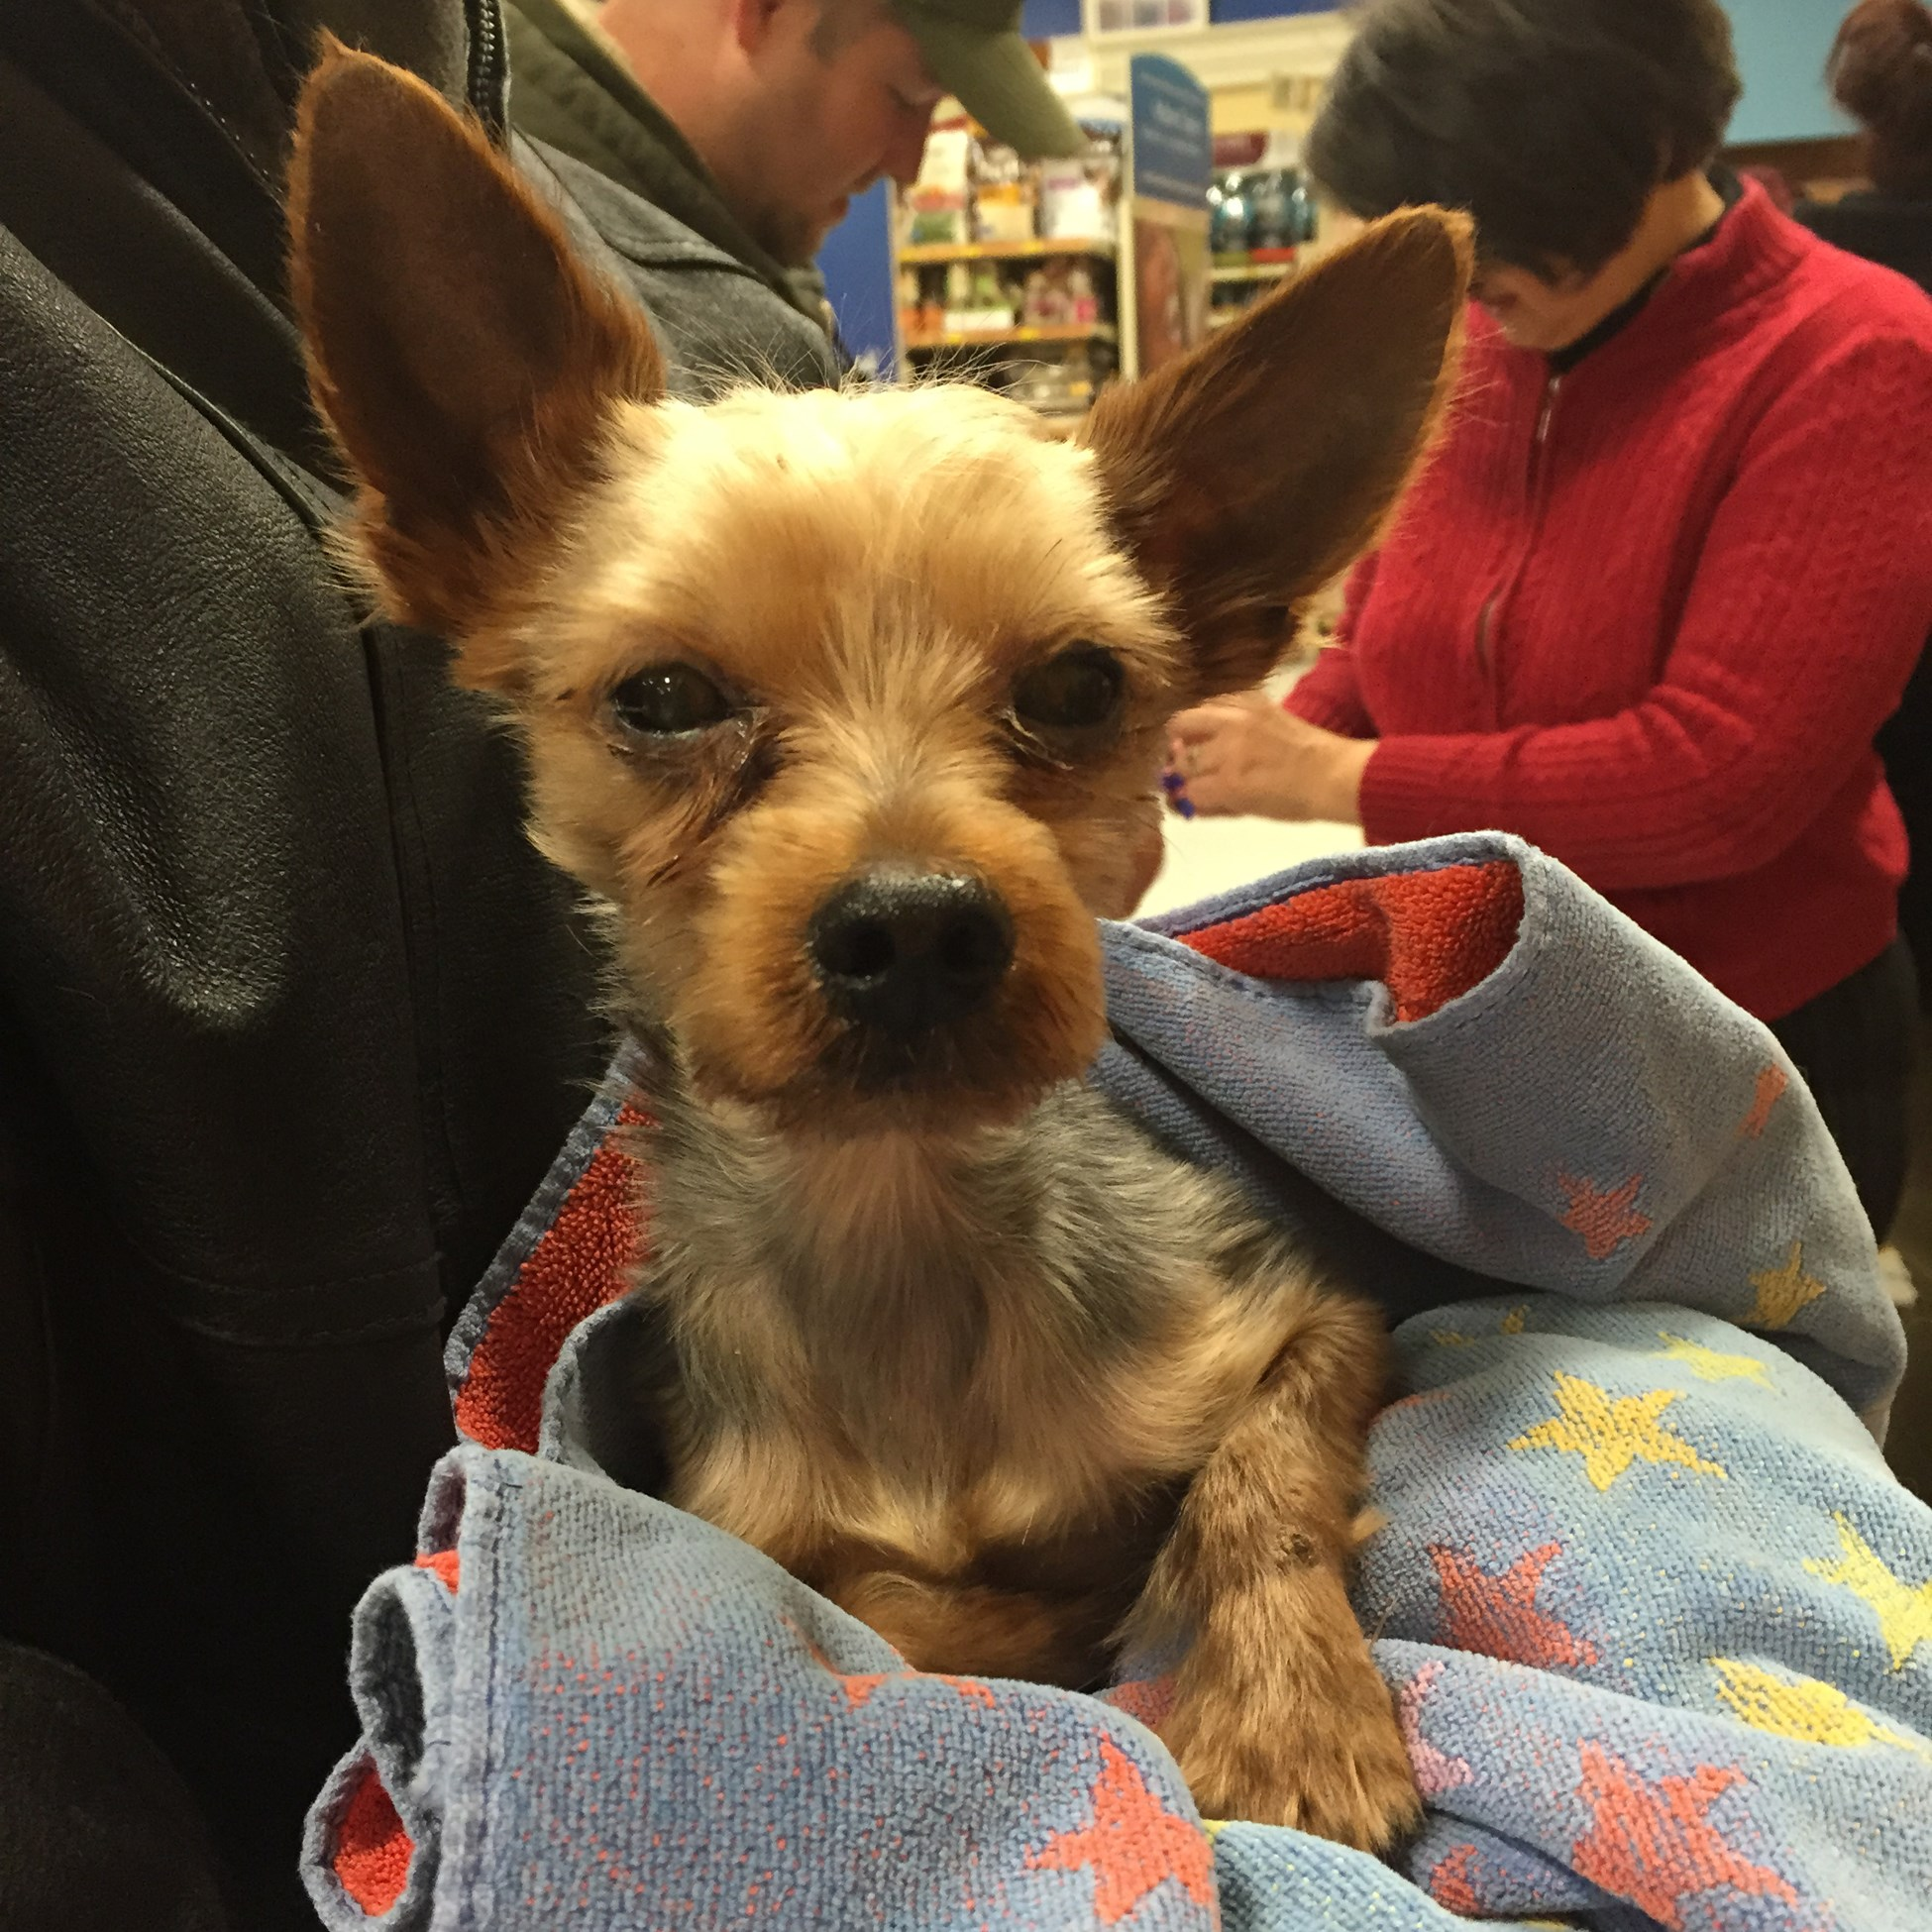 Dexter waits to be handed off at Petsmart in Monroeville by the volunteers who found him.